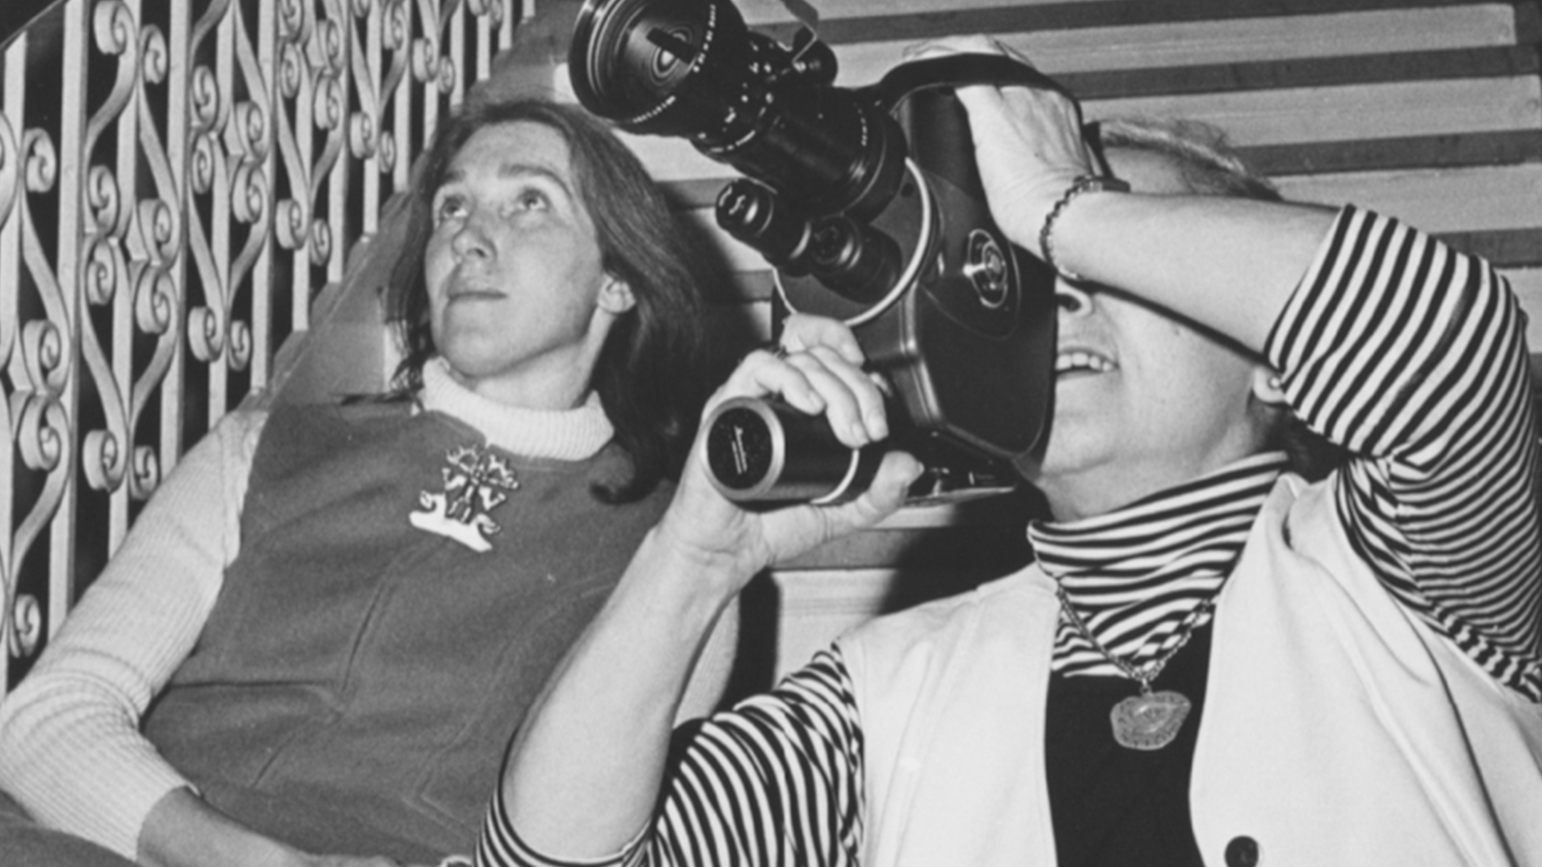 Black and white photograph of two women seated, one looking through a video camera